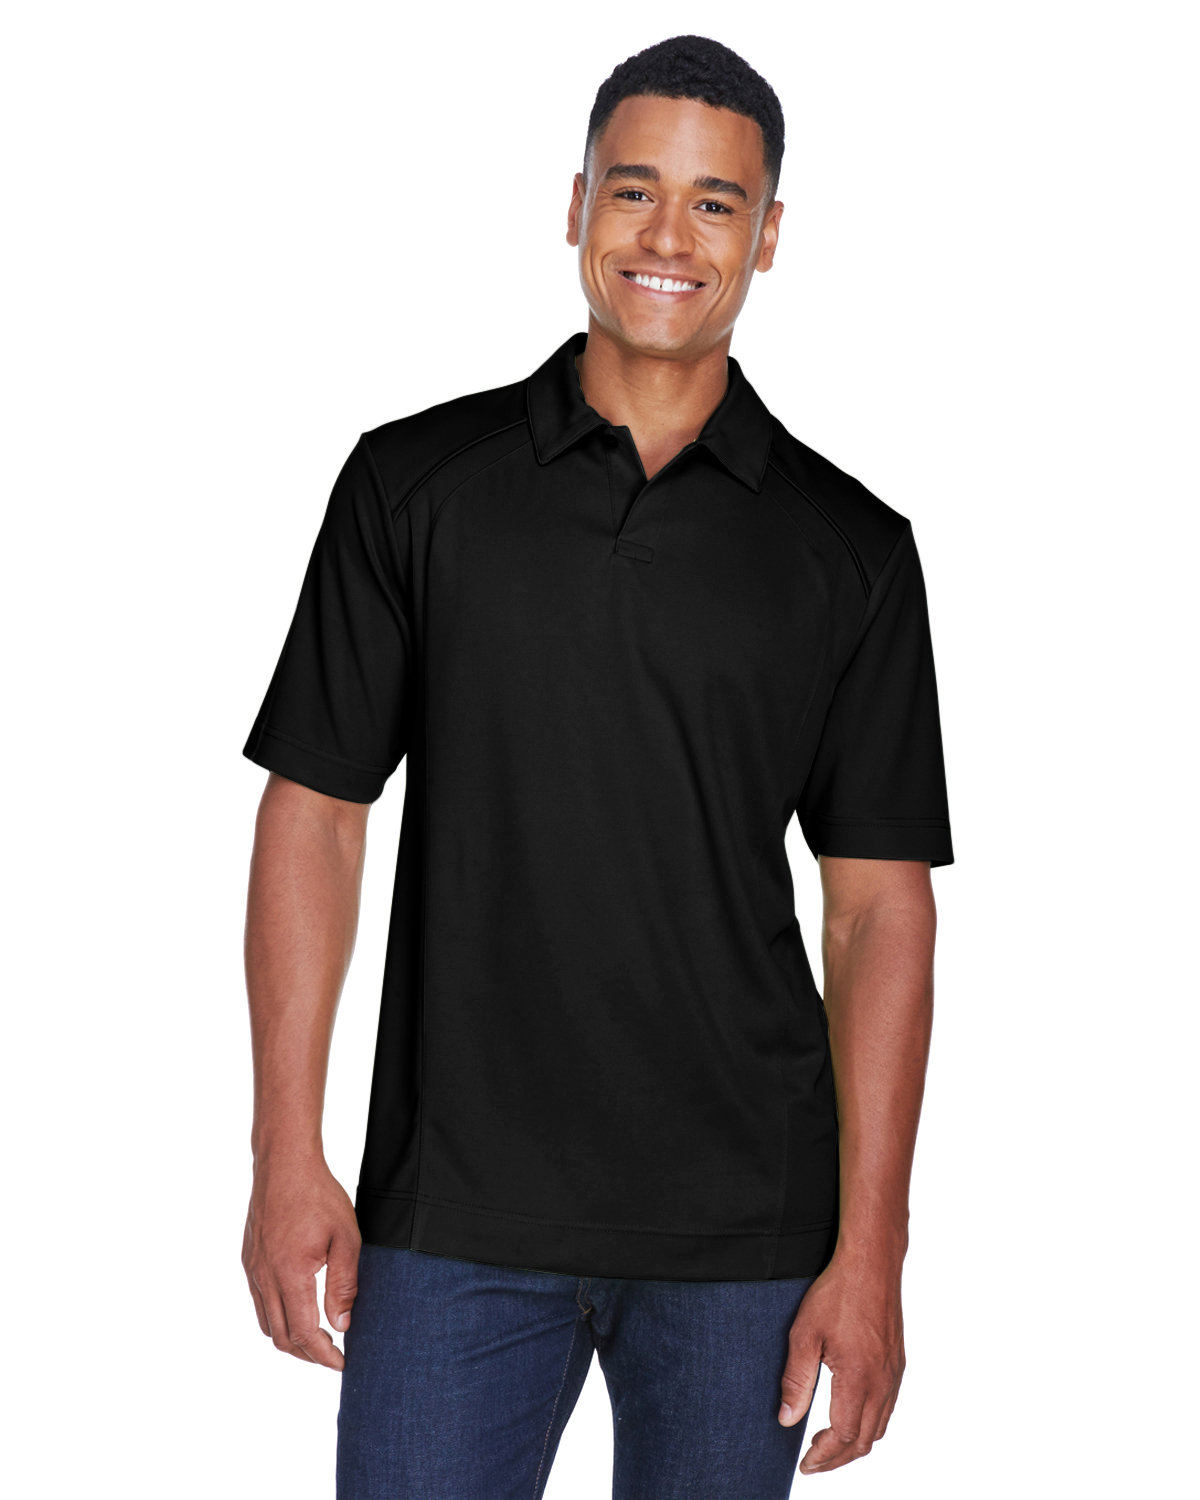 North End Men's Recycled Polyester Performance Piqué Polo BLACK